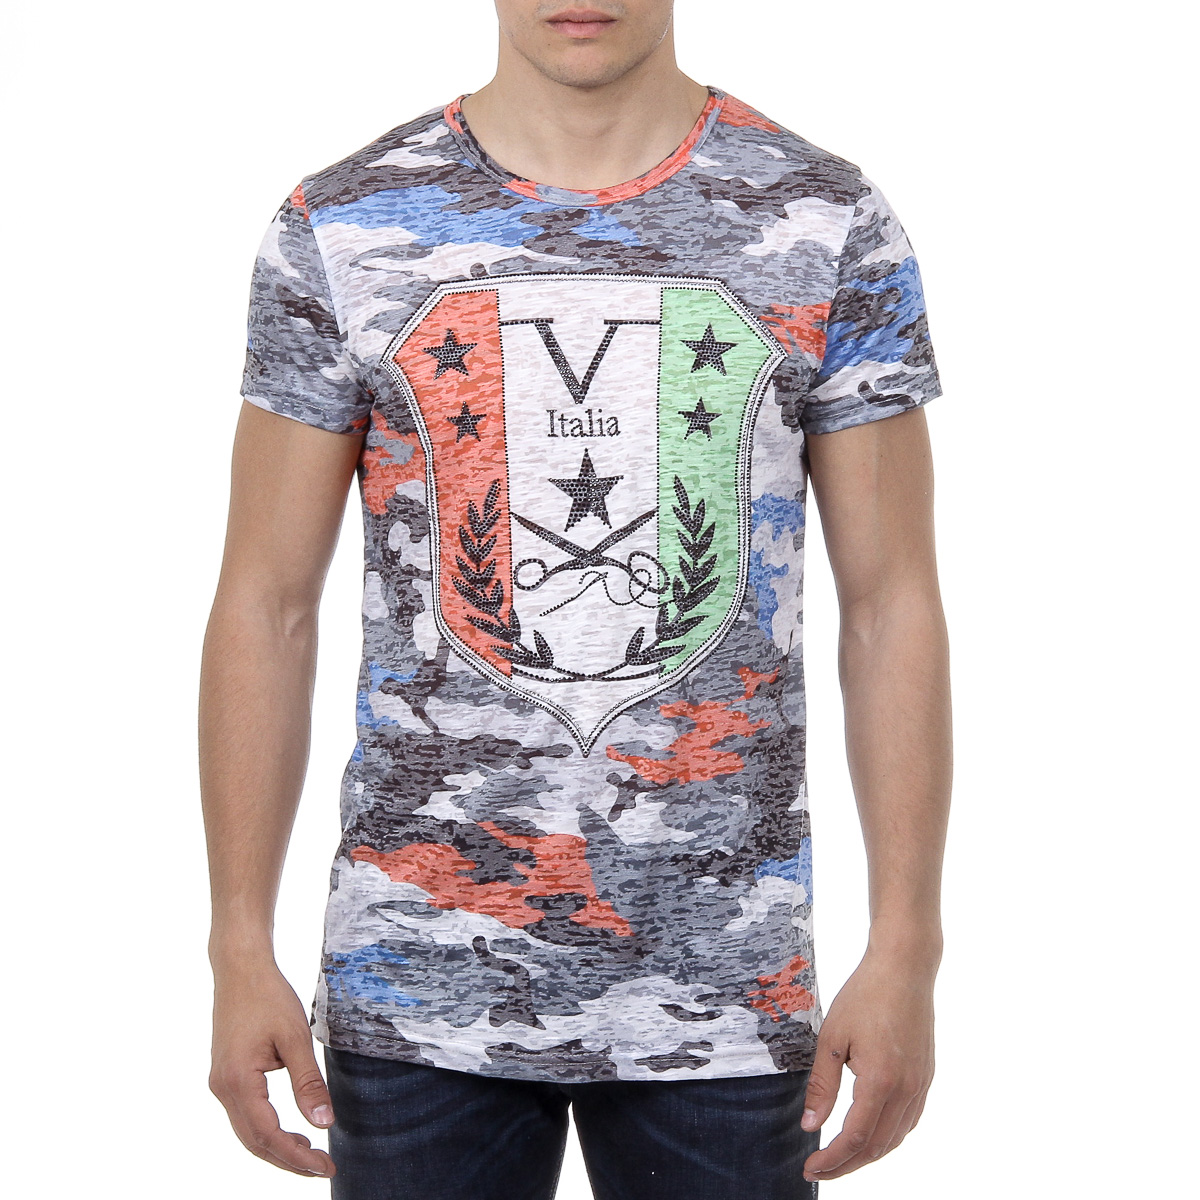 Primary image for V 1969 Italia Mens T-shirt Short Sleeves Round Neck Multicolor OWEN